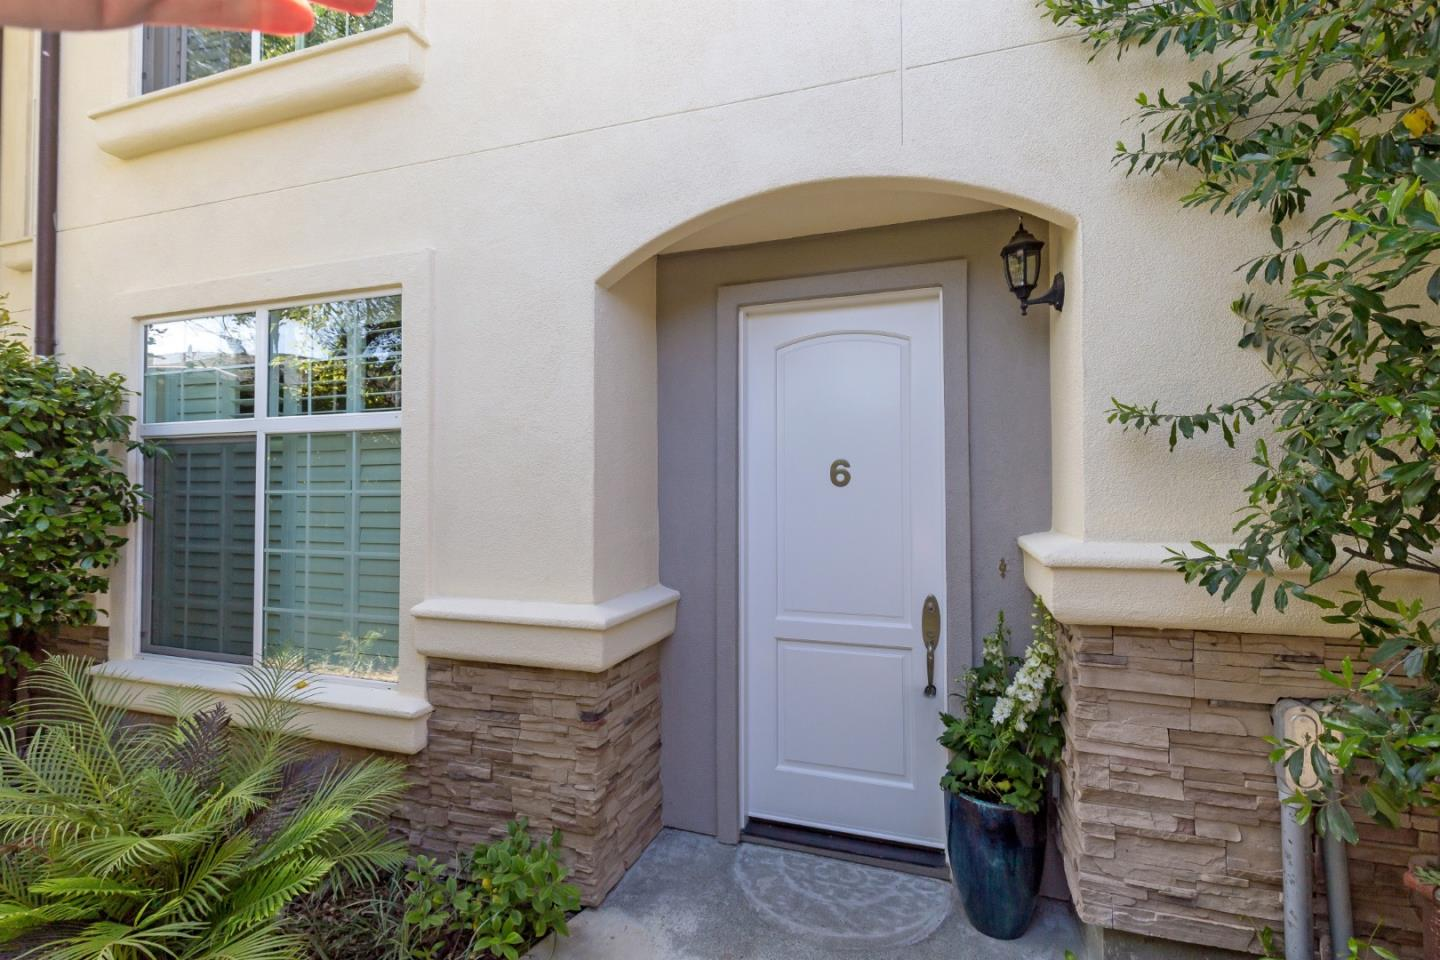 Stylish downtown living awaits at this desirable corner-unit townhome just blocks from the Village. Towering ceilings, oversized crown moldings, and plantation shutters create a luxurious ambiance in this two-story home. The living areas are on the upper level benefitting from the tall ceilings and abundant natural light from clerestory windows and French doors to a private balcony for fresh-air living. The chefs kitchen is impressively appointed, a fireplace enhances the setting, and two bedrooms, each with en suite bath are privately located on each level. An attached 1-car garage with laundry adds to the appeal. With shops and restaurants just blocks away, access to excellent Los Altos schools, and Highway 280 close by, this is an excellent option for Silicon Valley living!